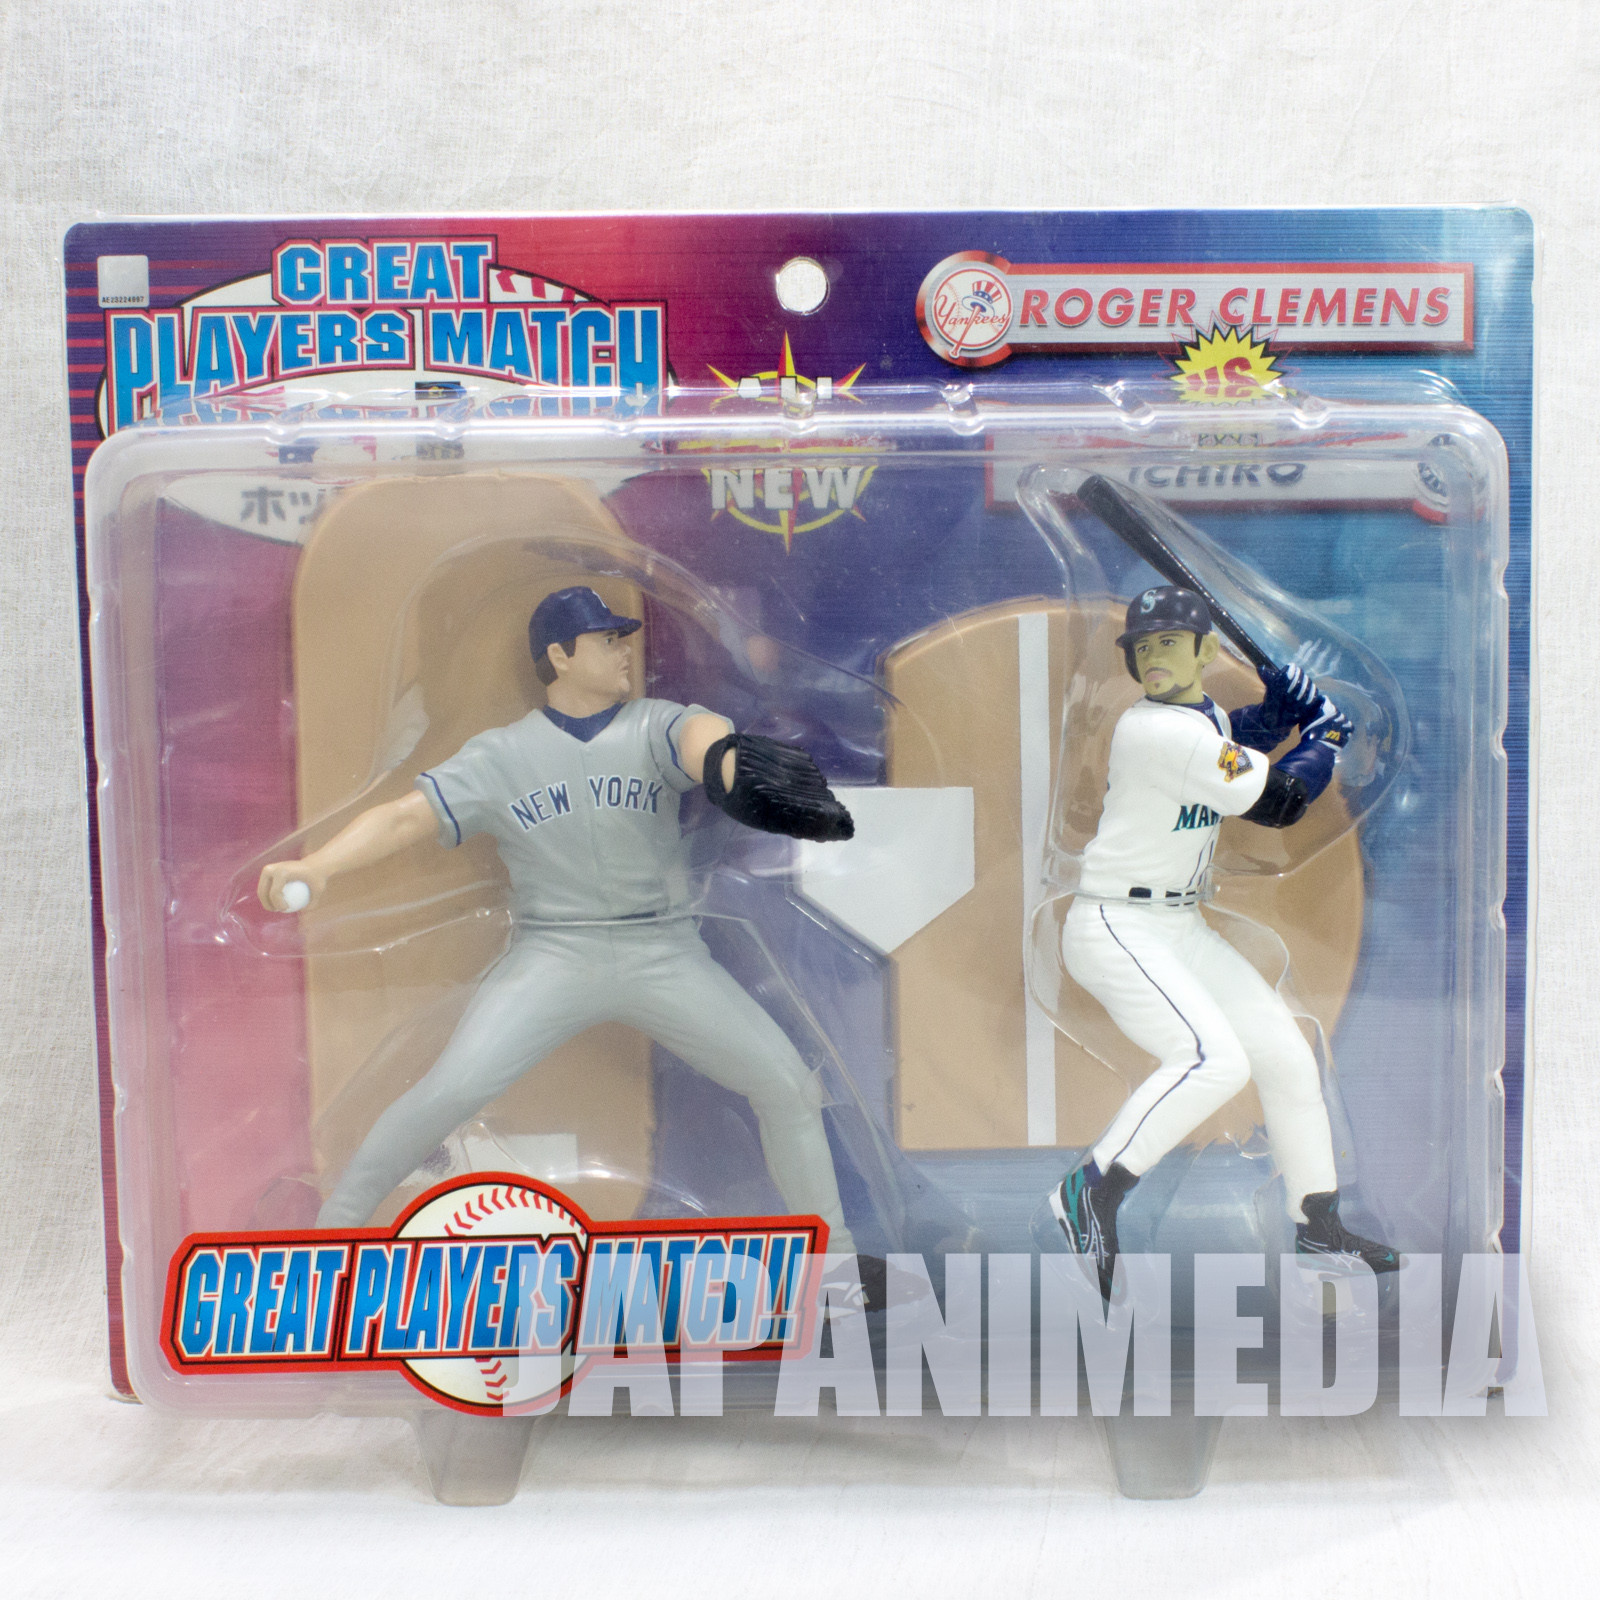 Baseball William Roger Clemens (NYY) vs Ichiro Suzuki (SEA) Great Players Mathch More Realism Figure